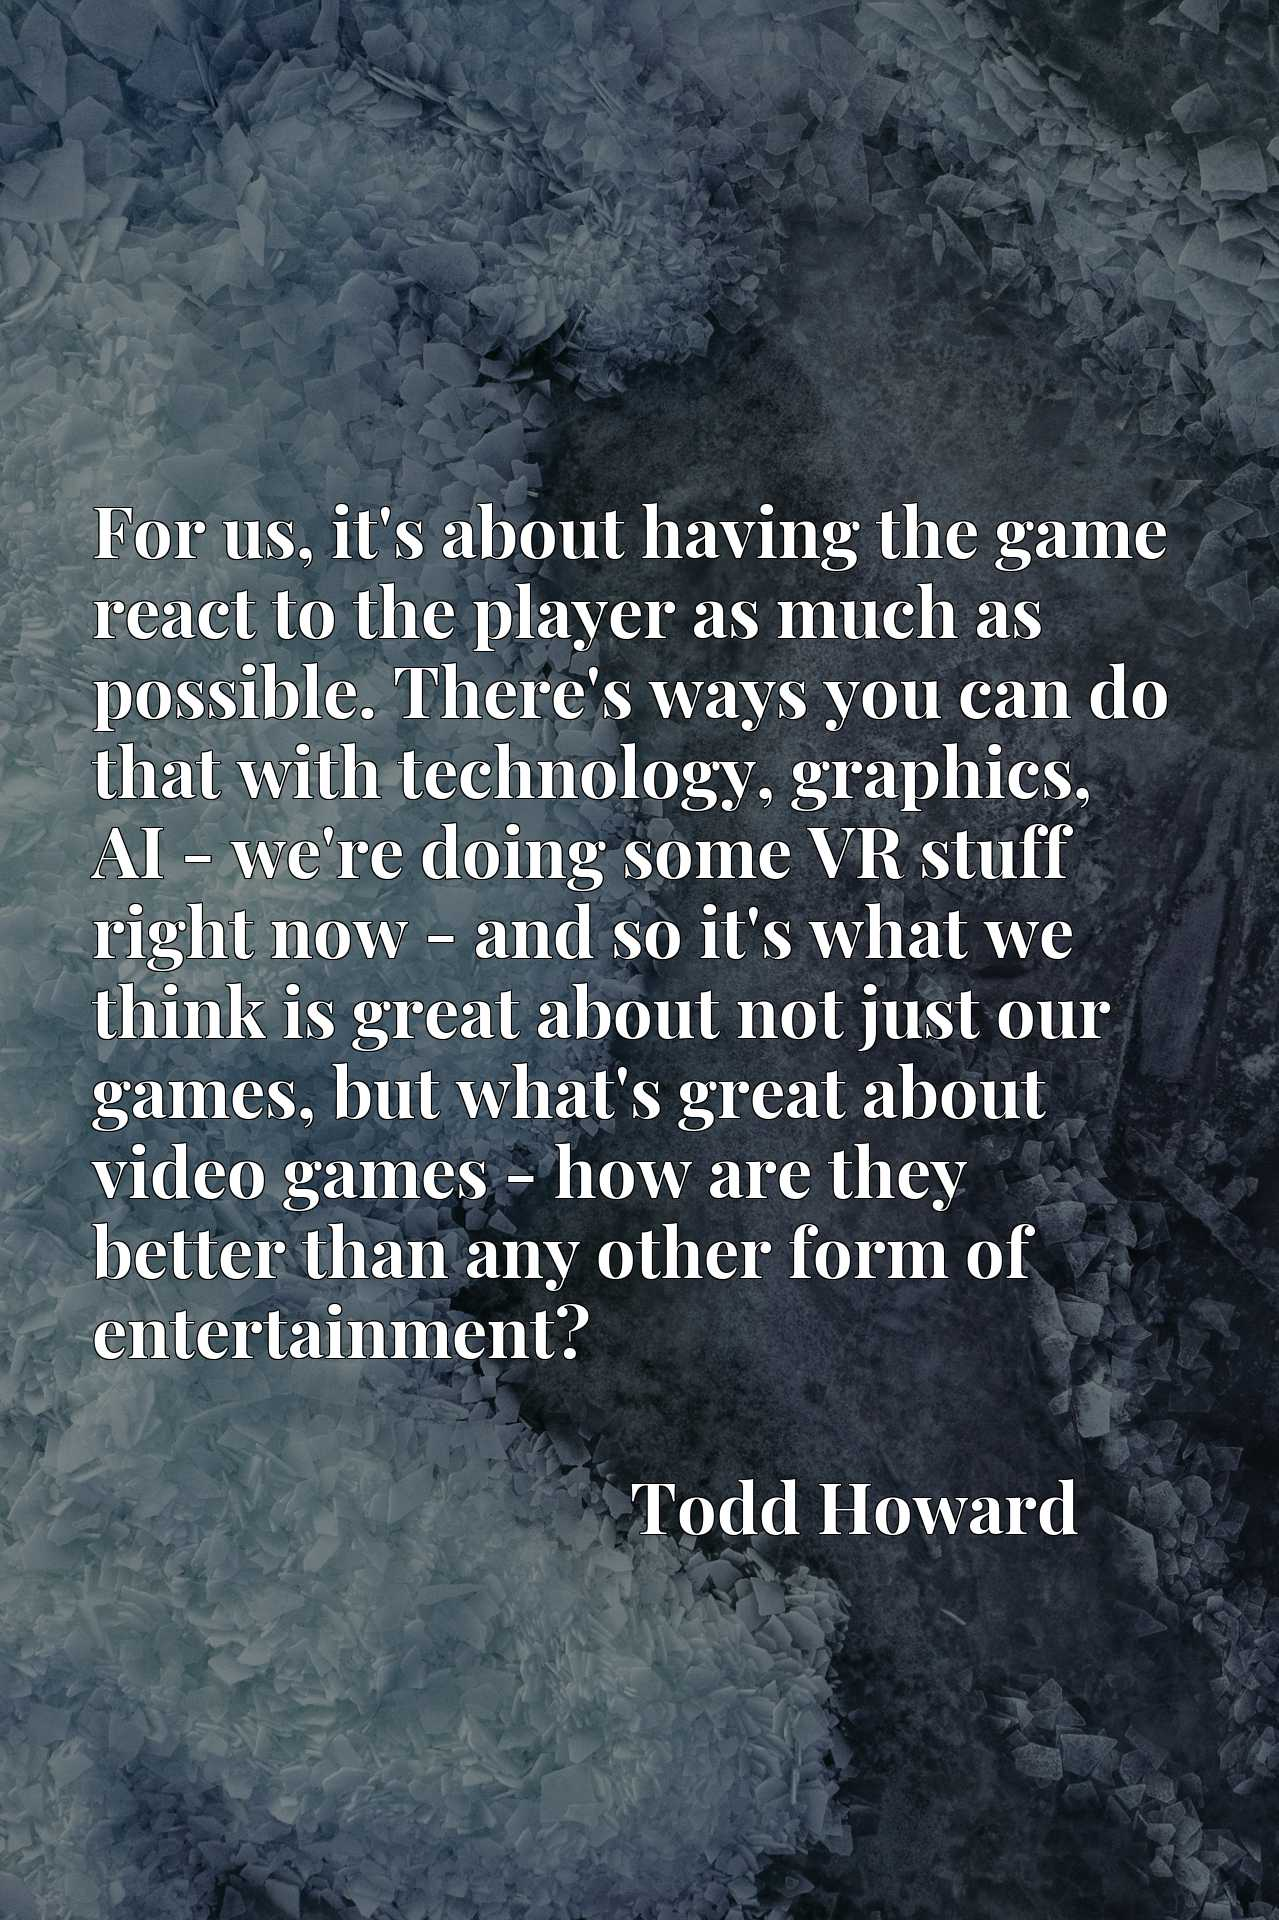 For us, it's about having the game react to the player as much as possible. There's ways you can do that with technology, graphics, AI - we're doing some VR stuff right now - and so it's what we think is great about not just our games, but what's great about video games - how are they better than any other form of entertainment?